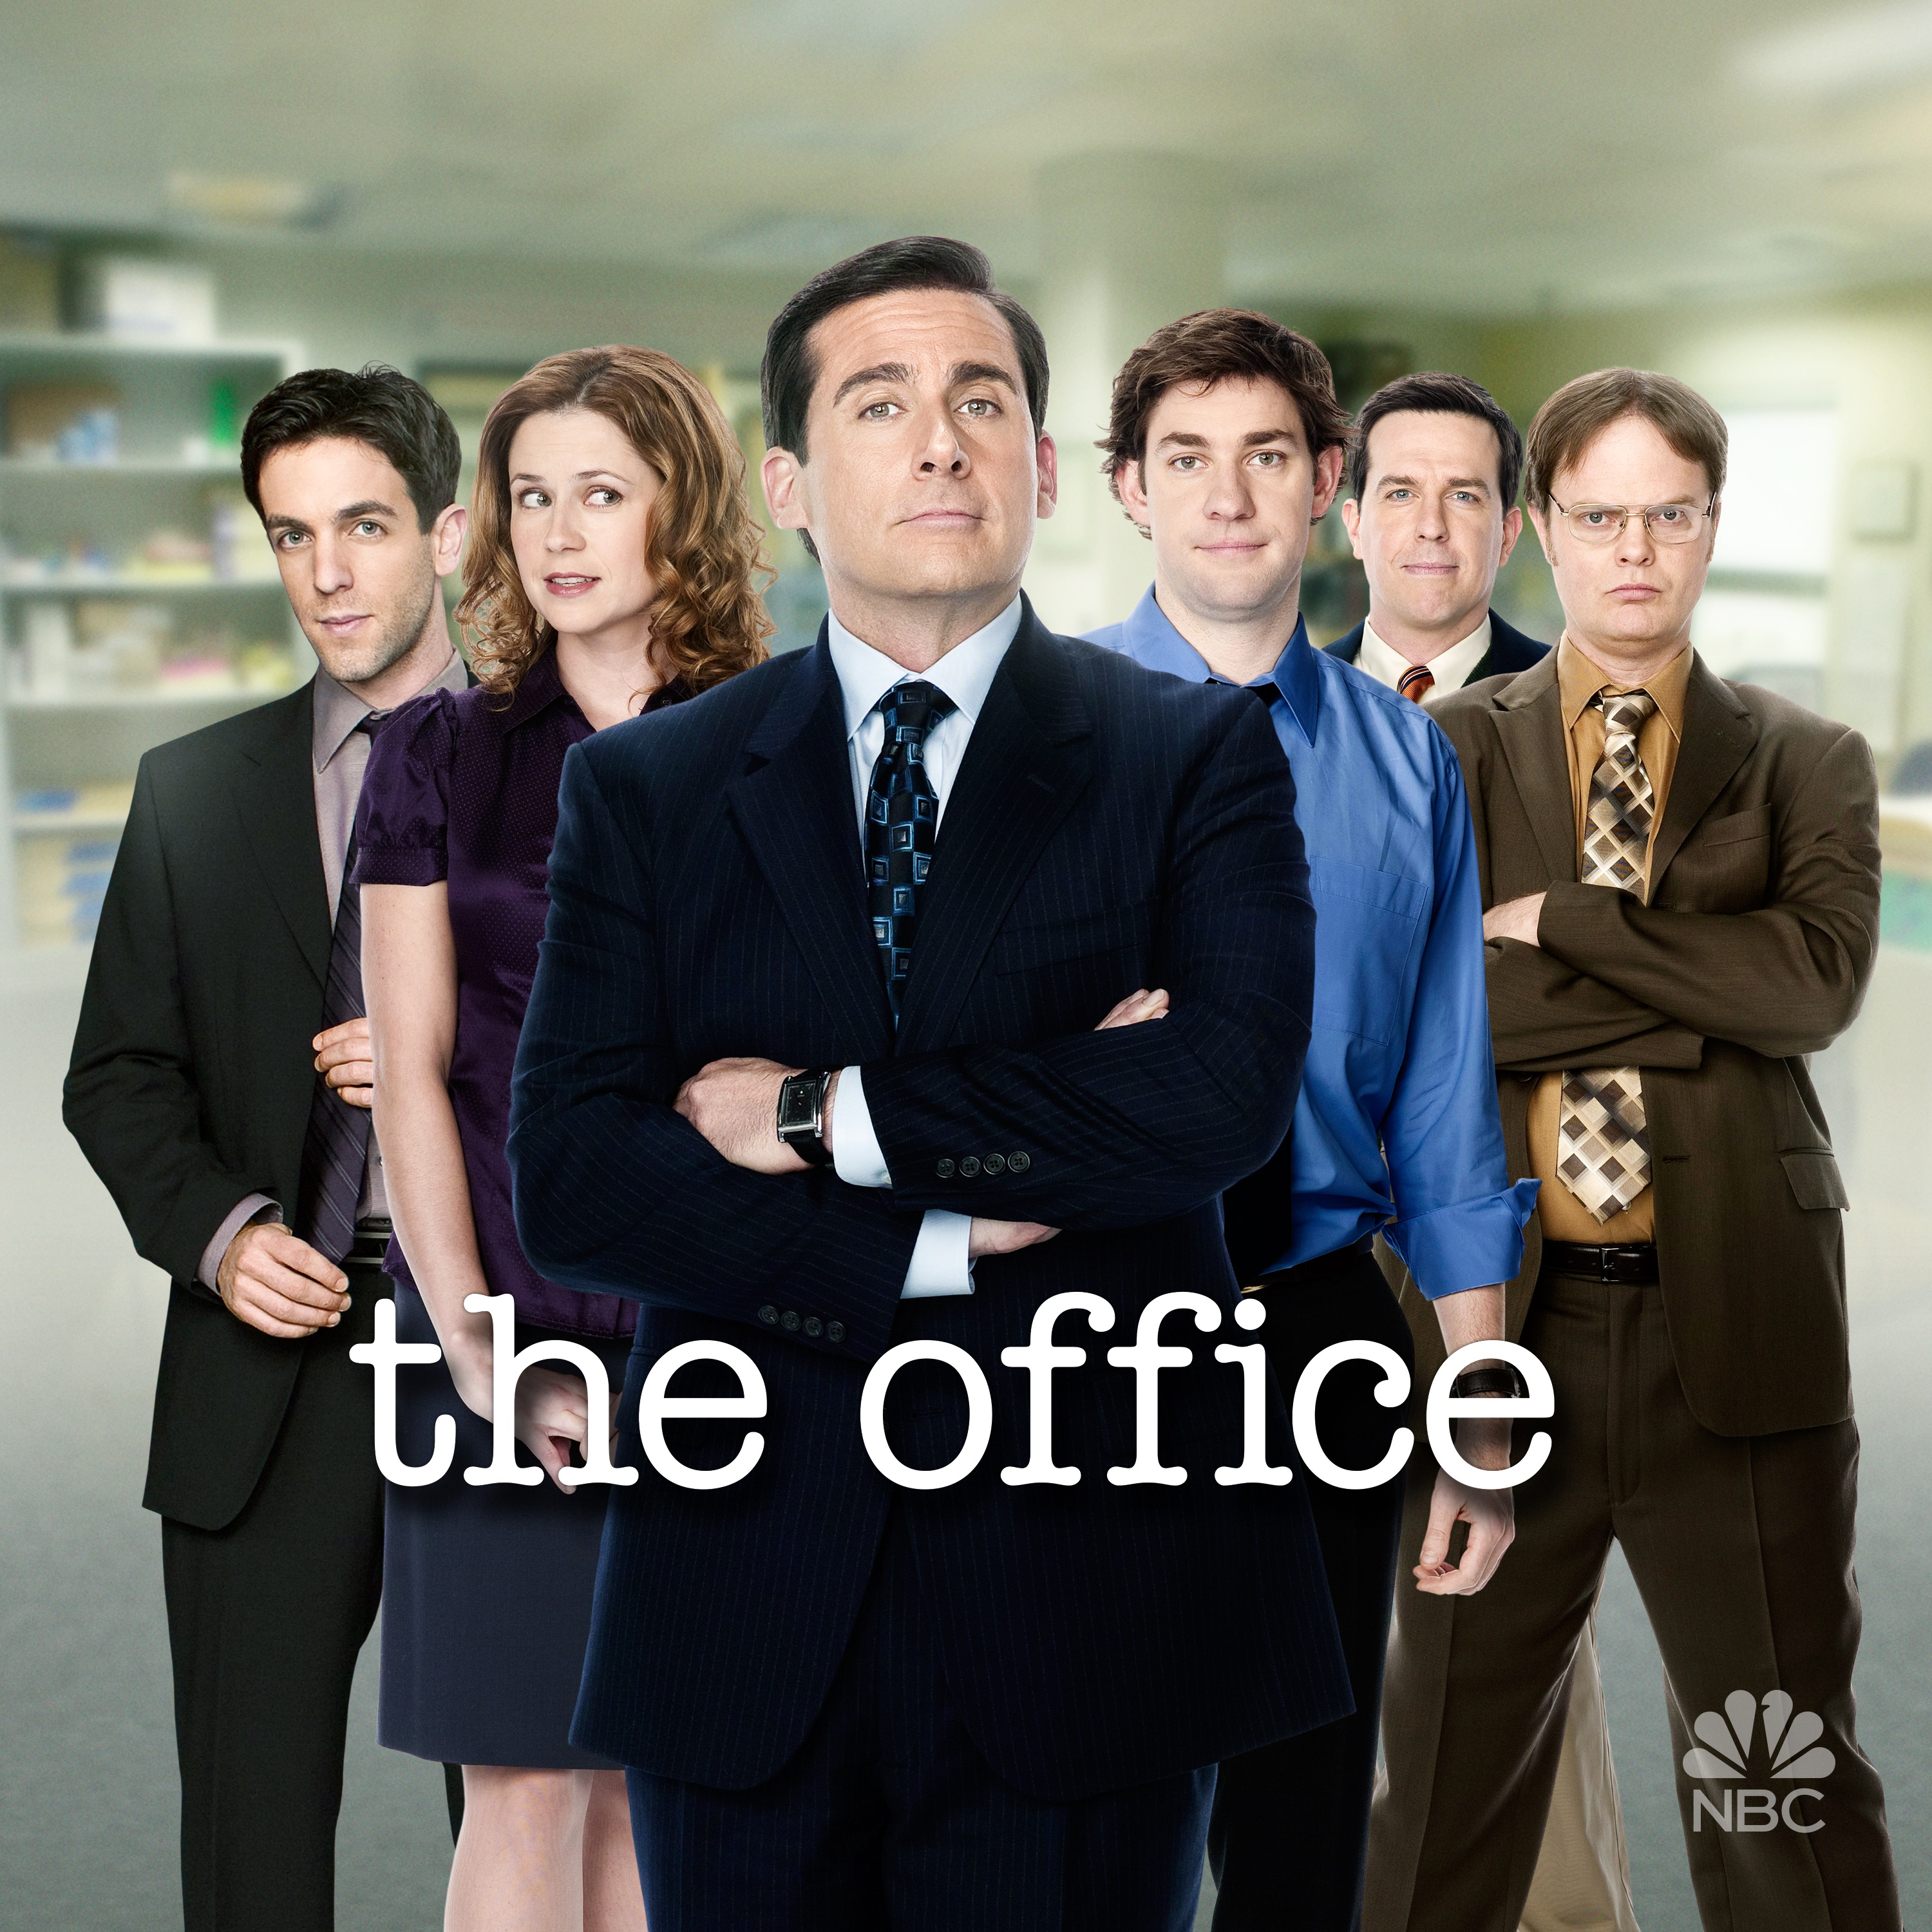 Season 4 Of The Office Began On September 27 2007 Nbc First Four Weeks Show Were